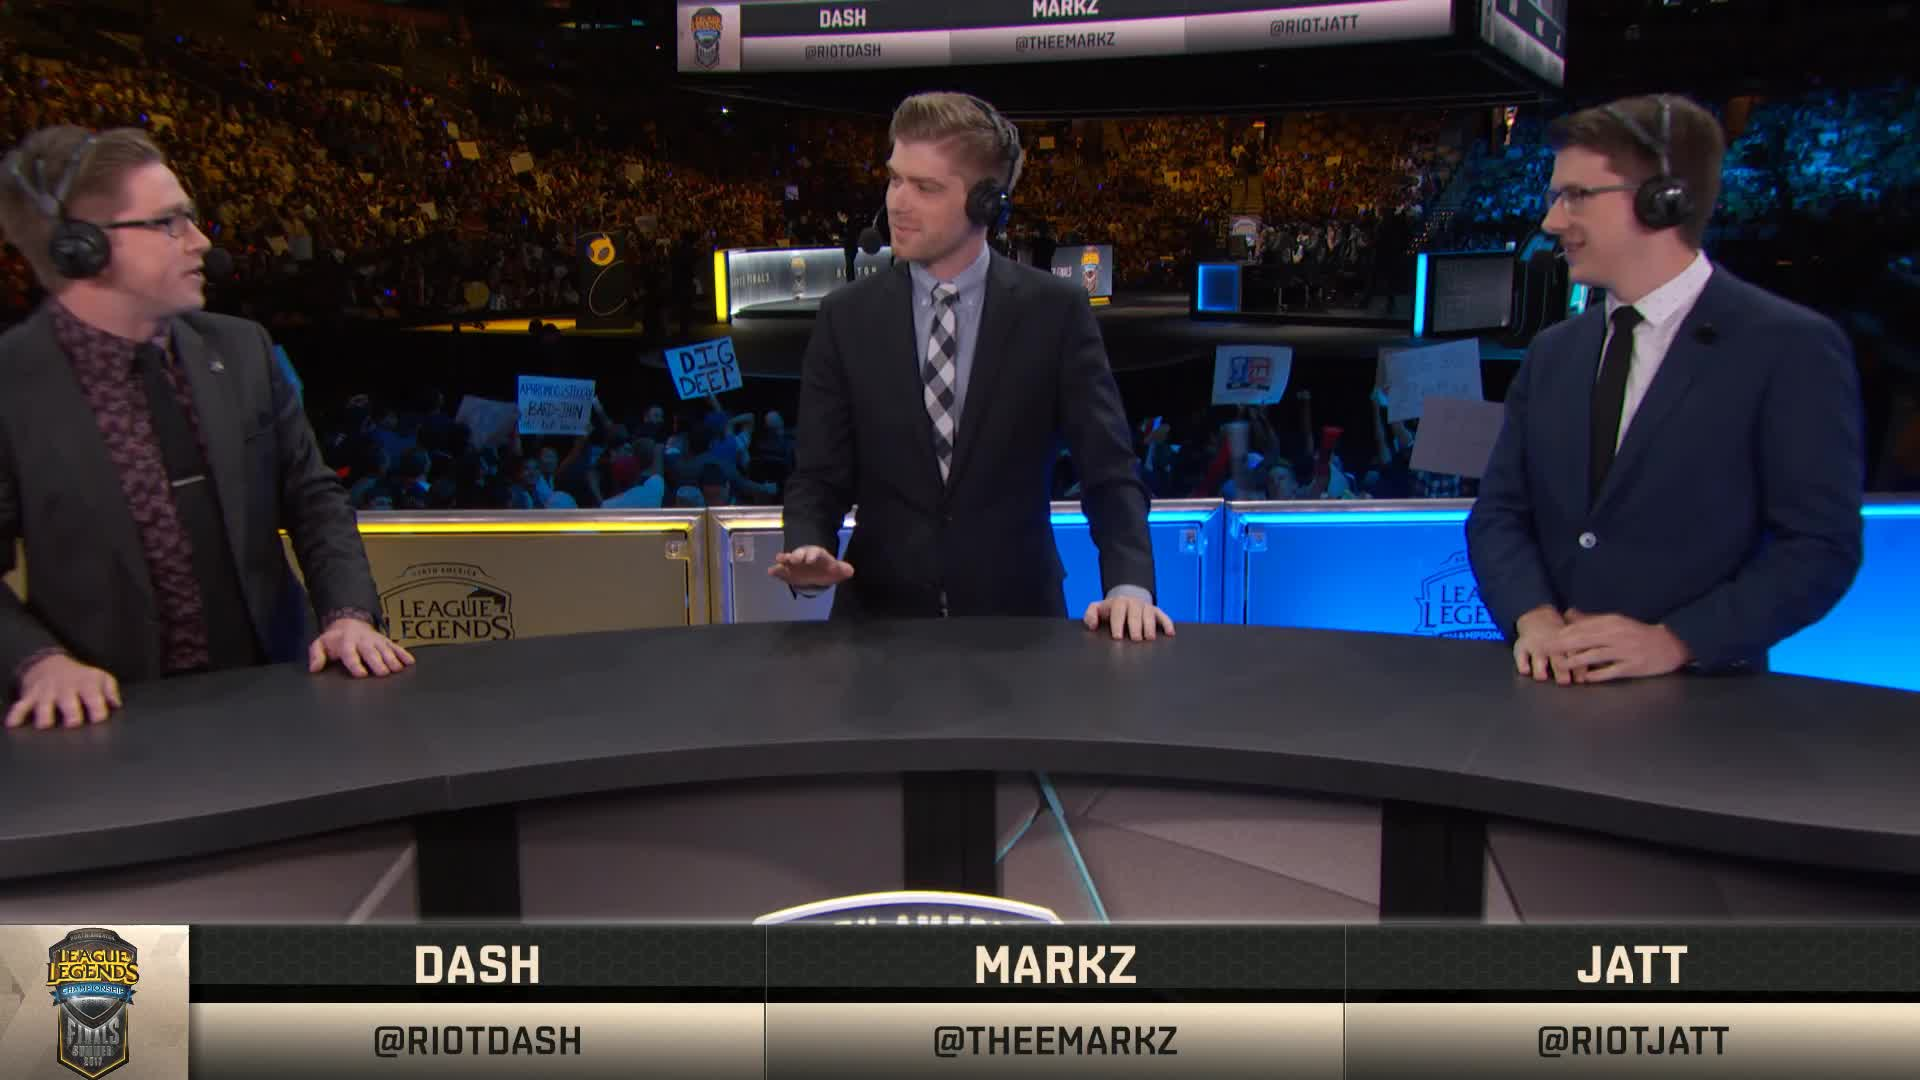 League of Legends casters rep Lakers in Celtics' arena TD